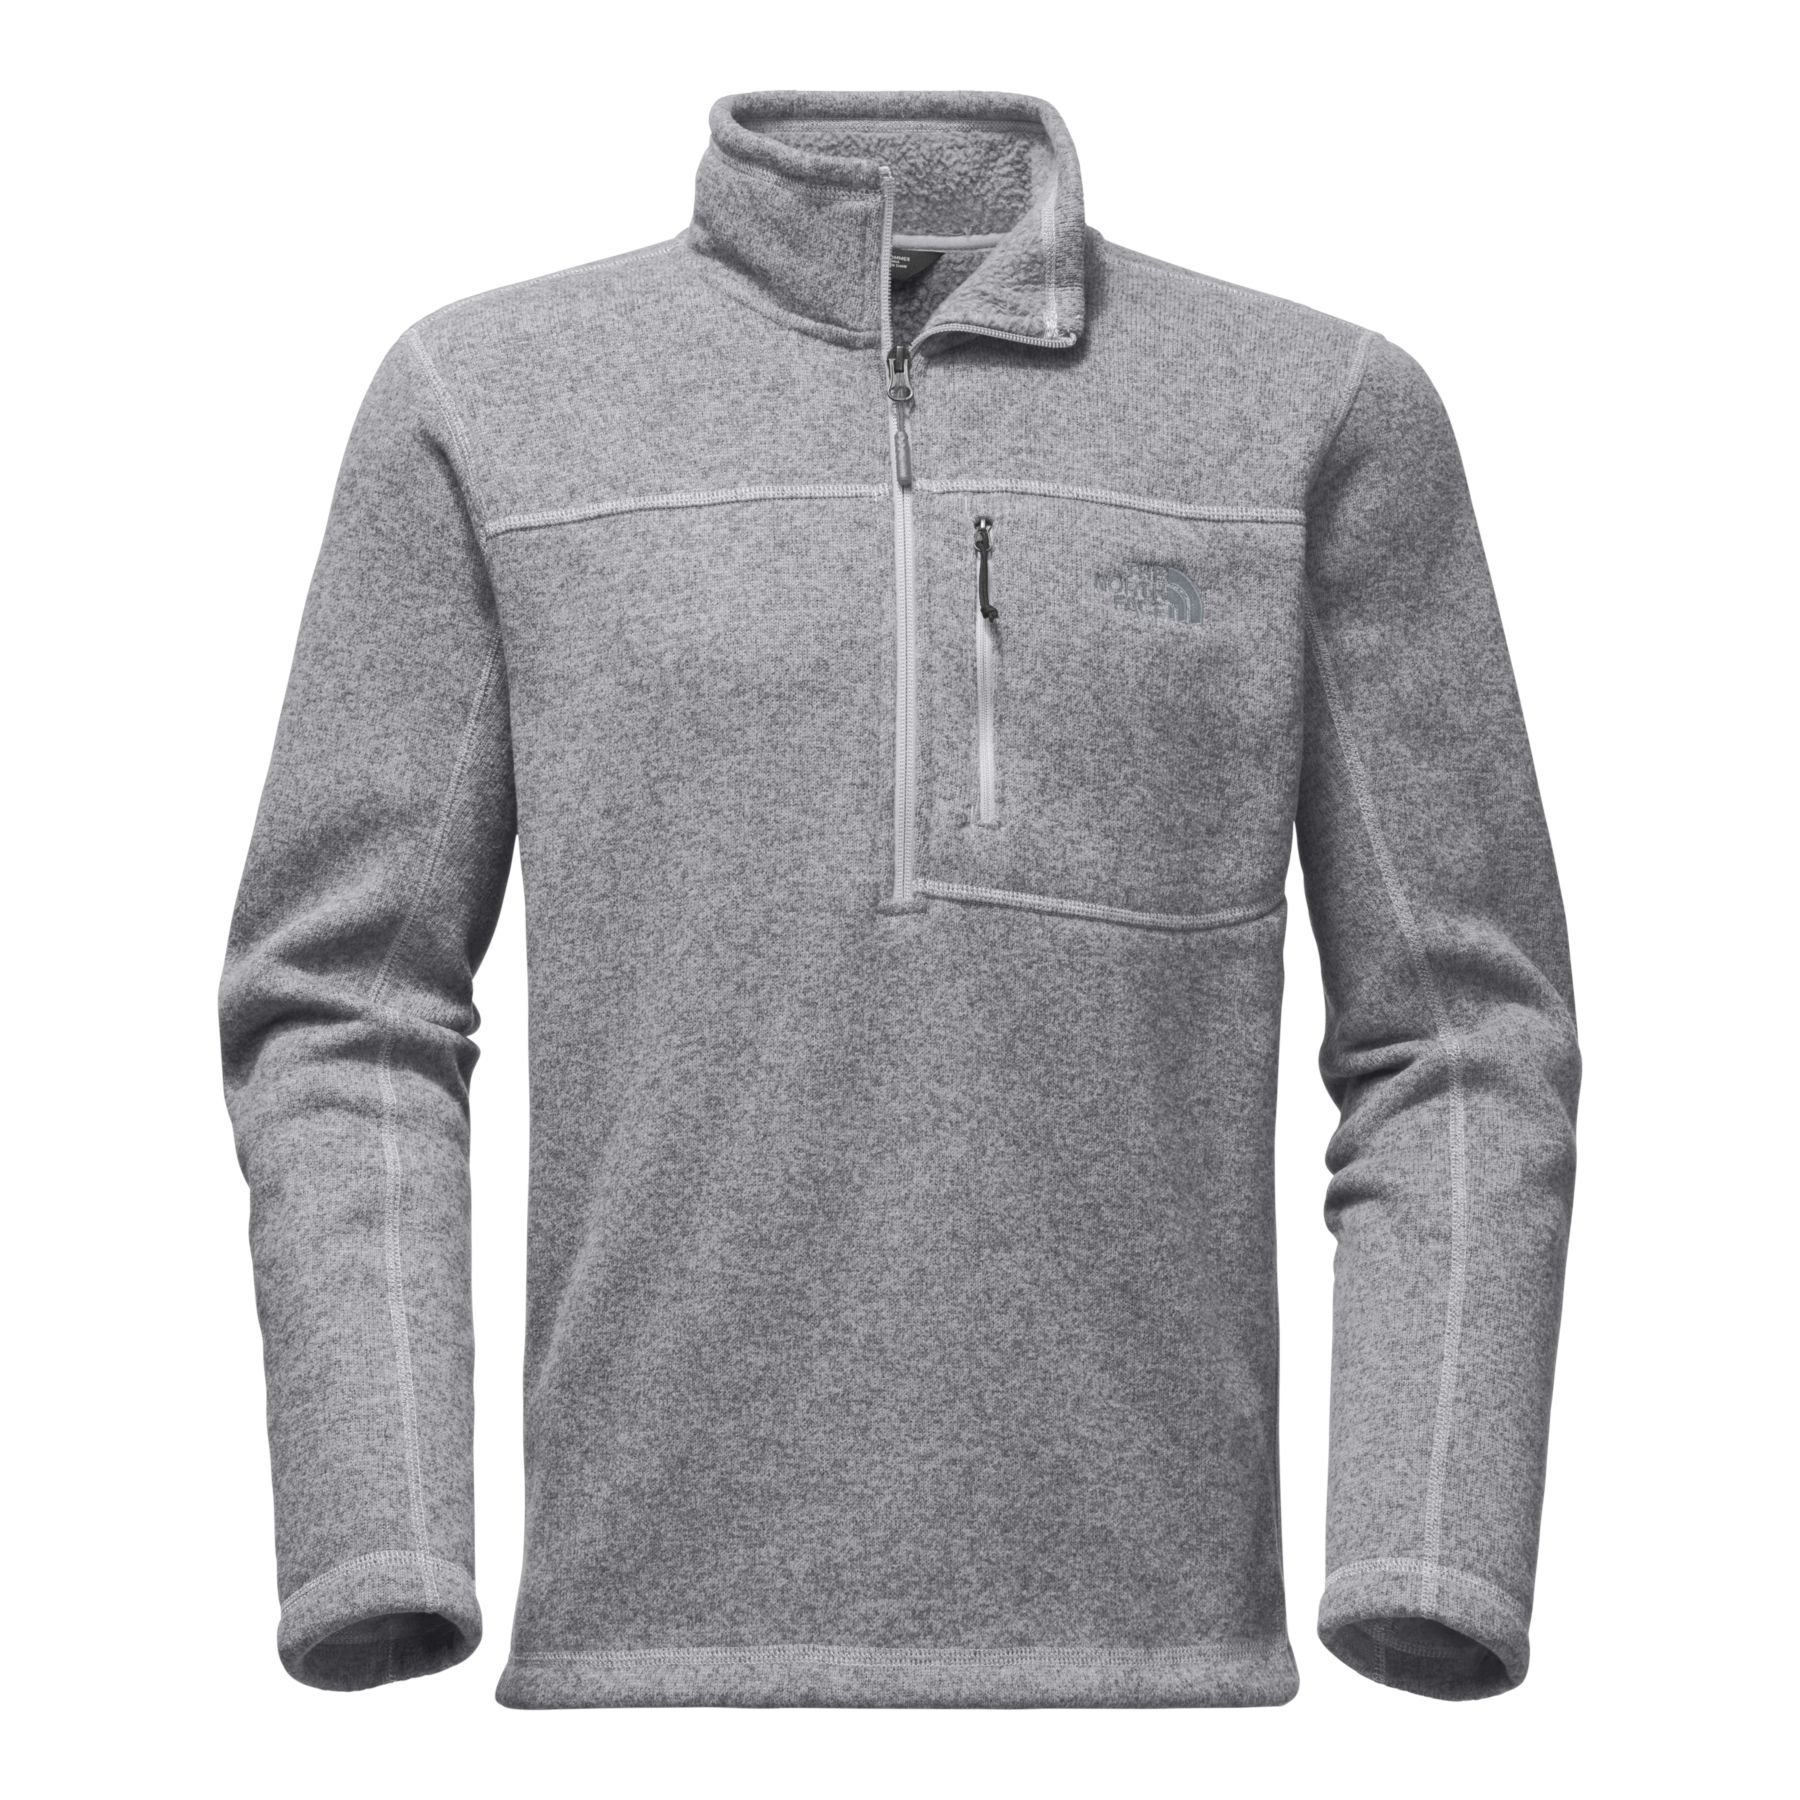 The North Face Men's Gordon Lyons 1 & 4 Zip Fleece - TNF Light Grey Heather - L by The North Face